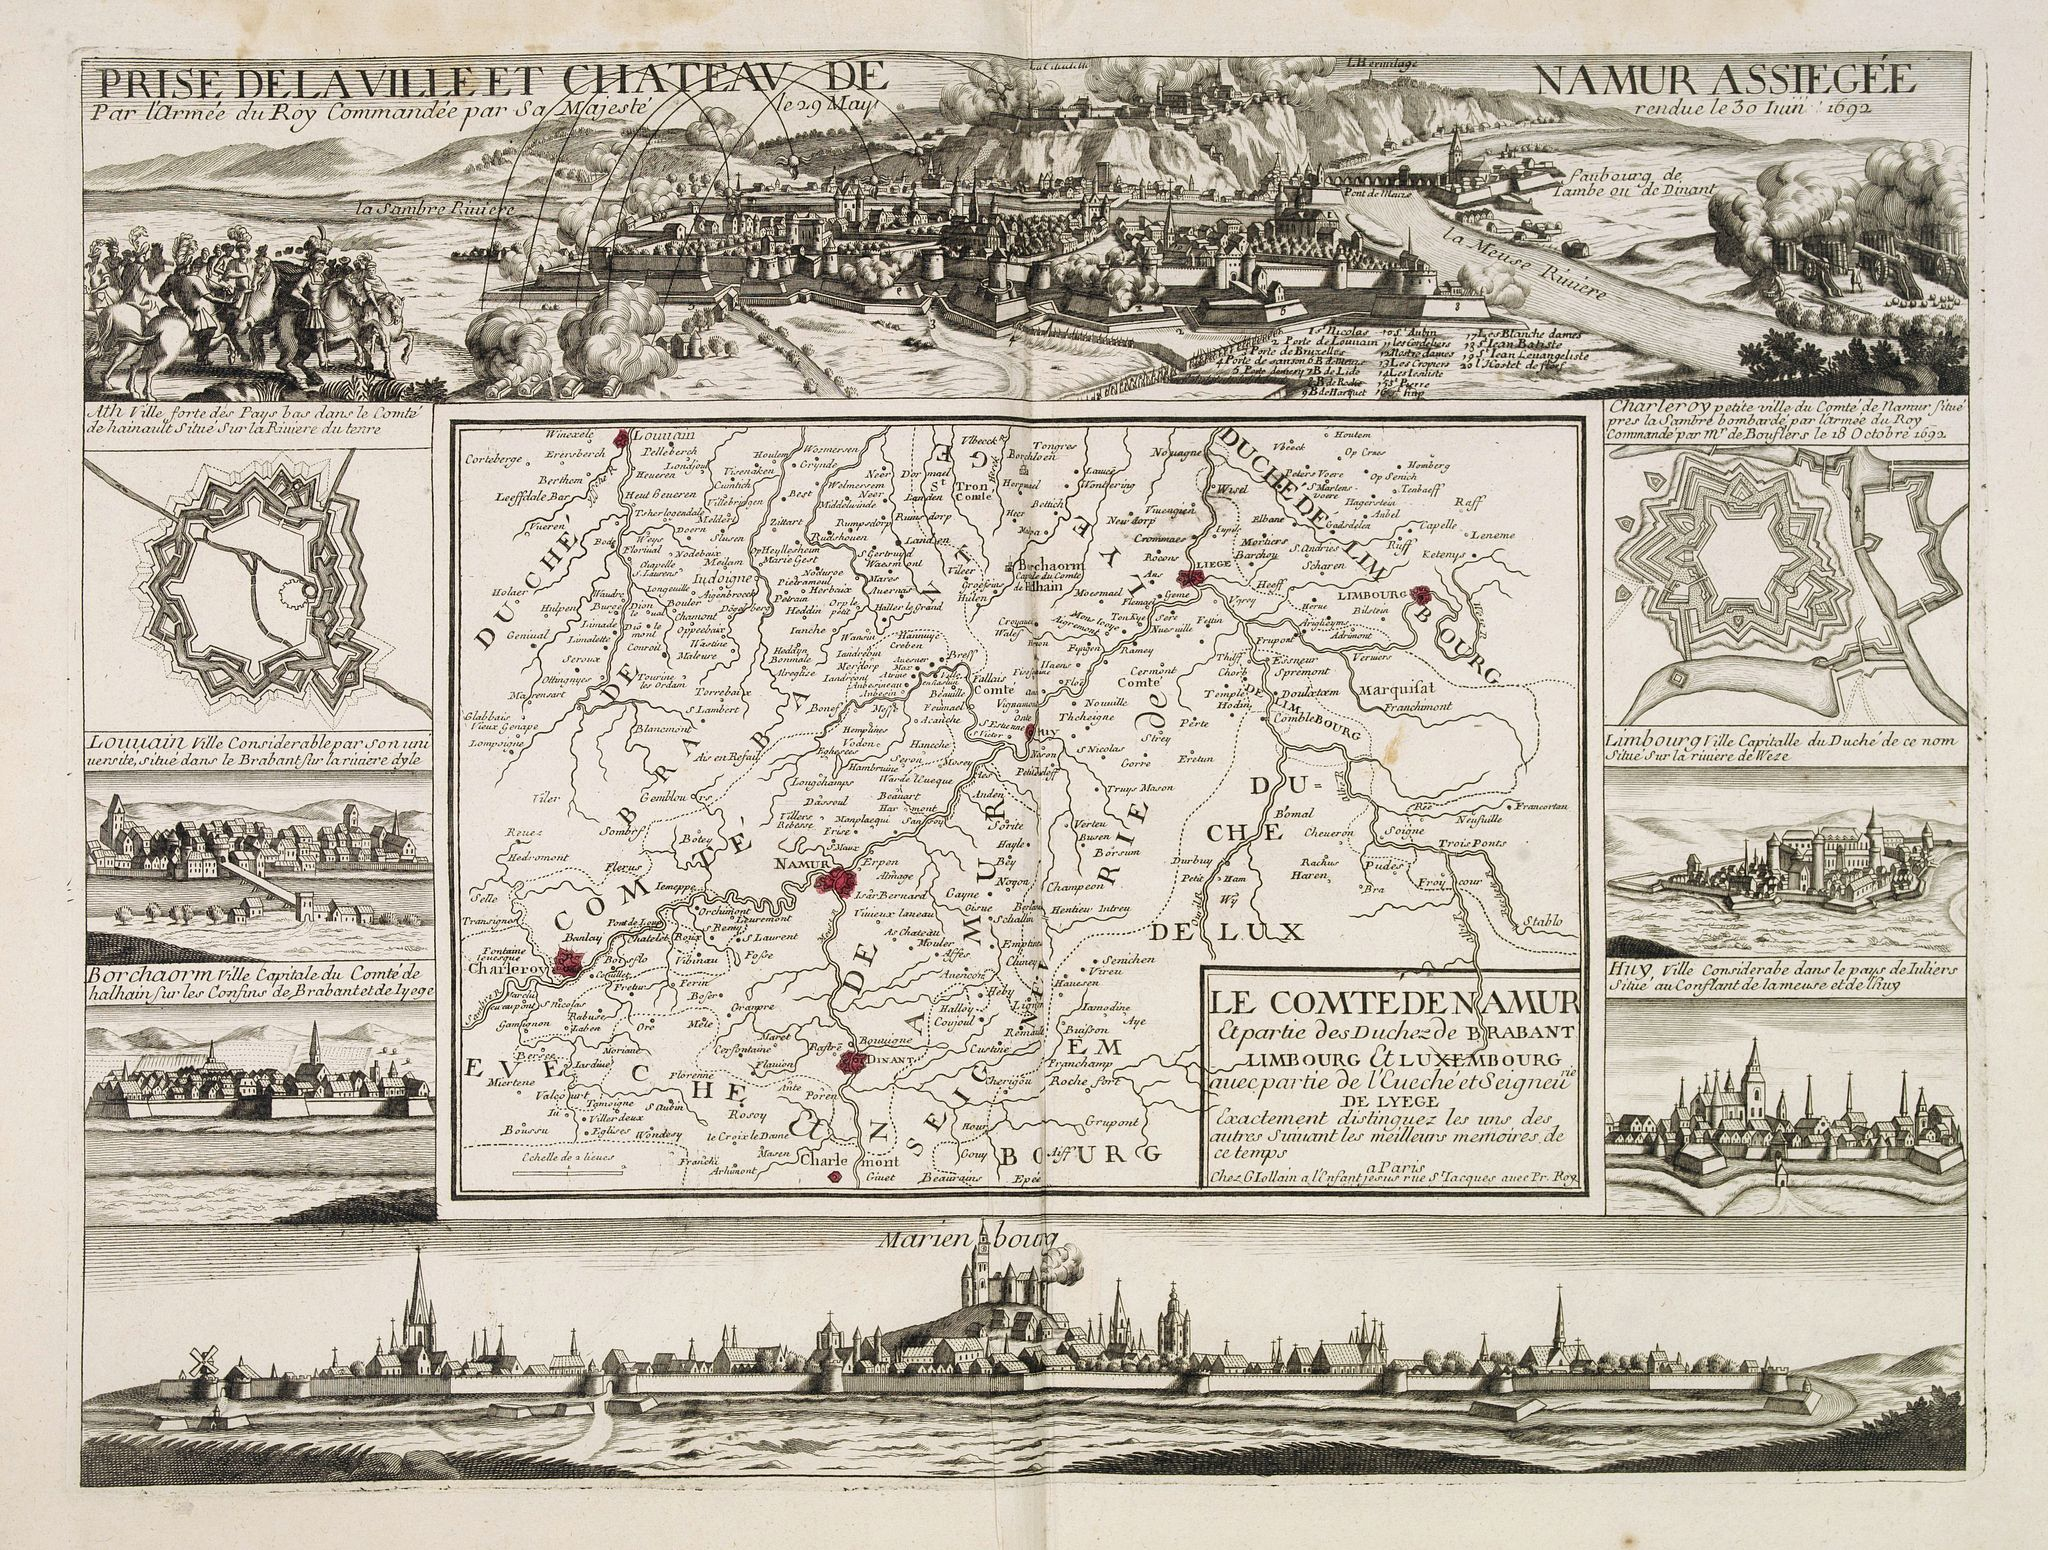 JOLLAIN, F.,  Le comte de Namur et partie des Duchez de Brabant. . ., antique map, old maps